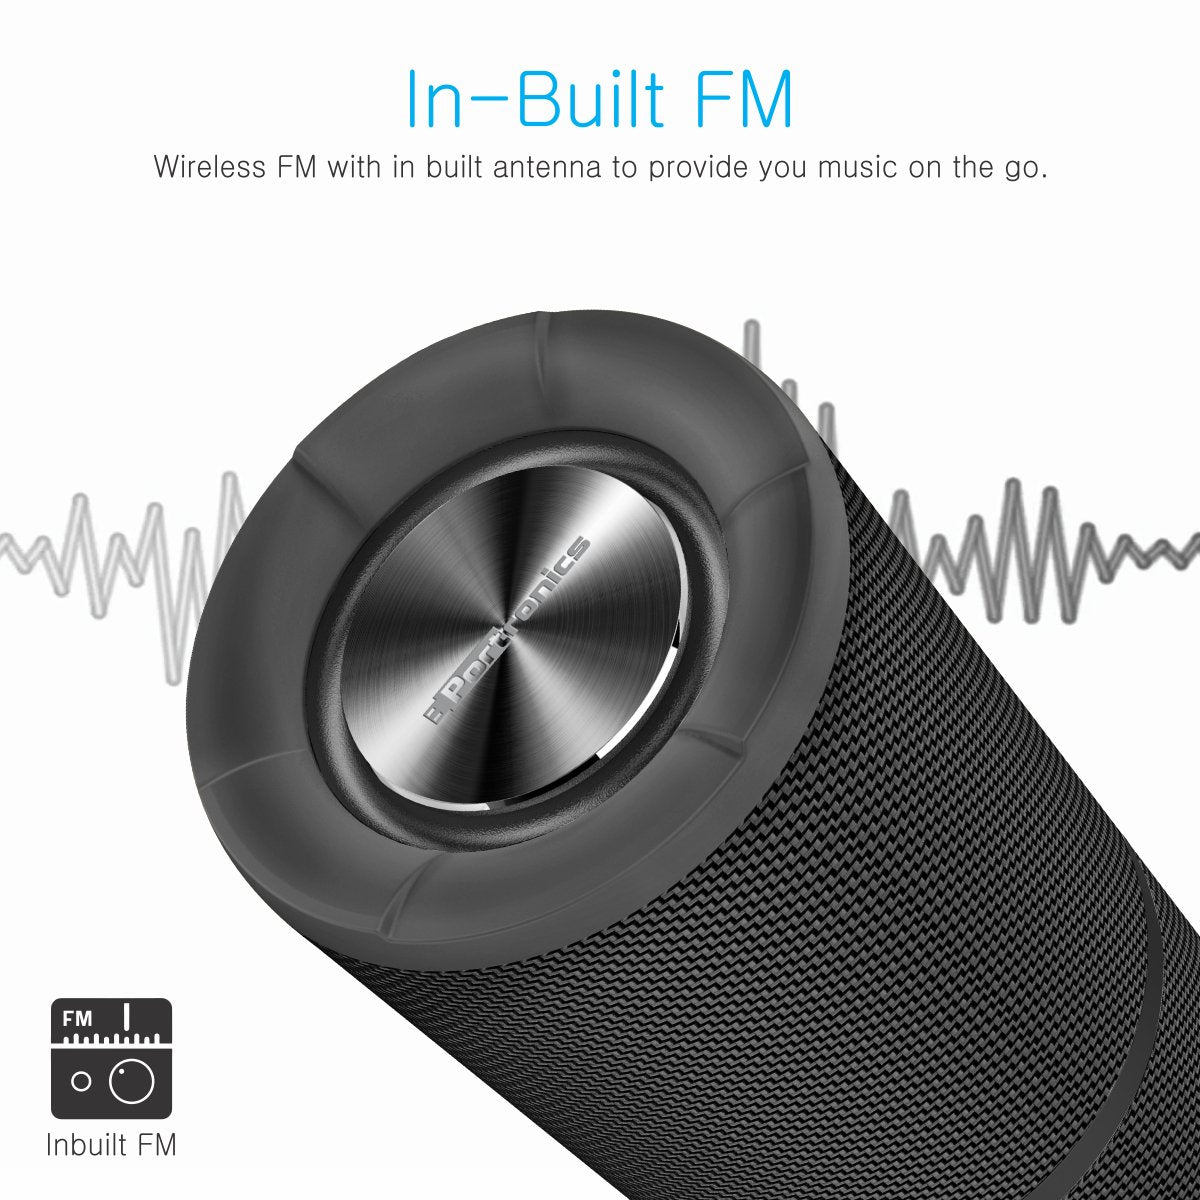 aed1ff71495 Portronics POR-795 Breeze Bluetooth 4.1 Wireless Stereo Speaker with FM  Tuner